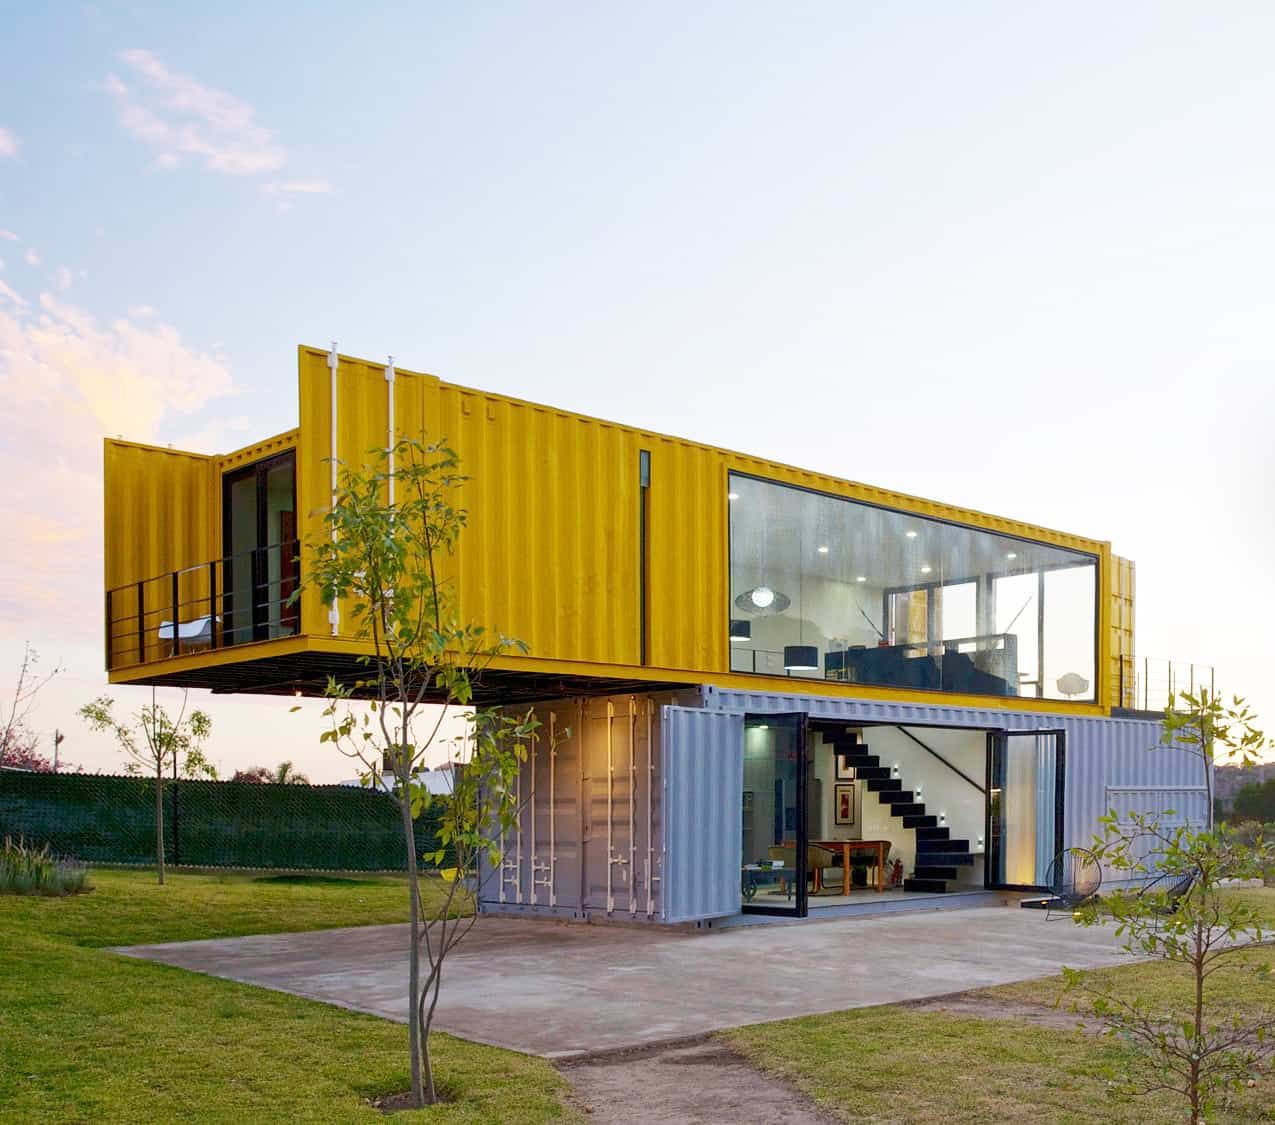 4 shipping containers prefab plus 1 for guests for Containers house design